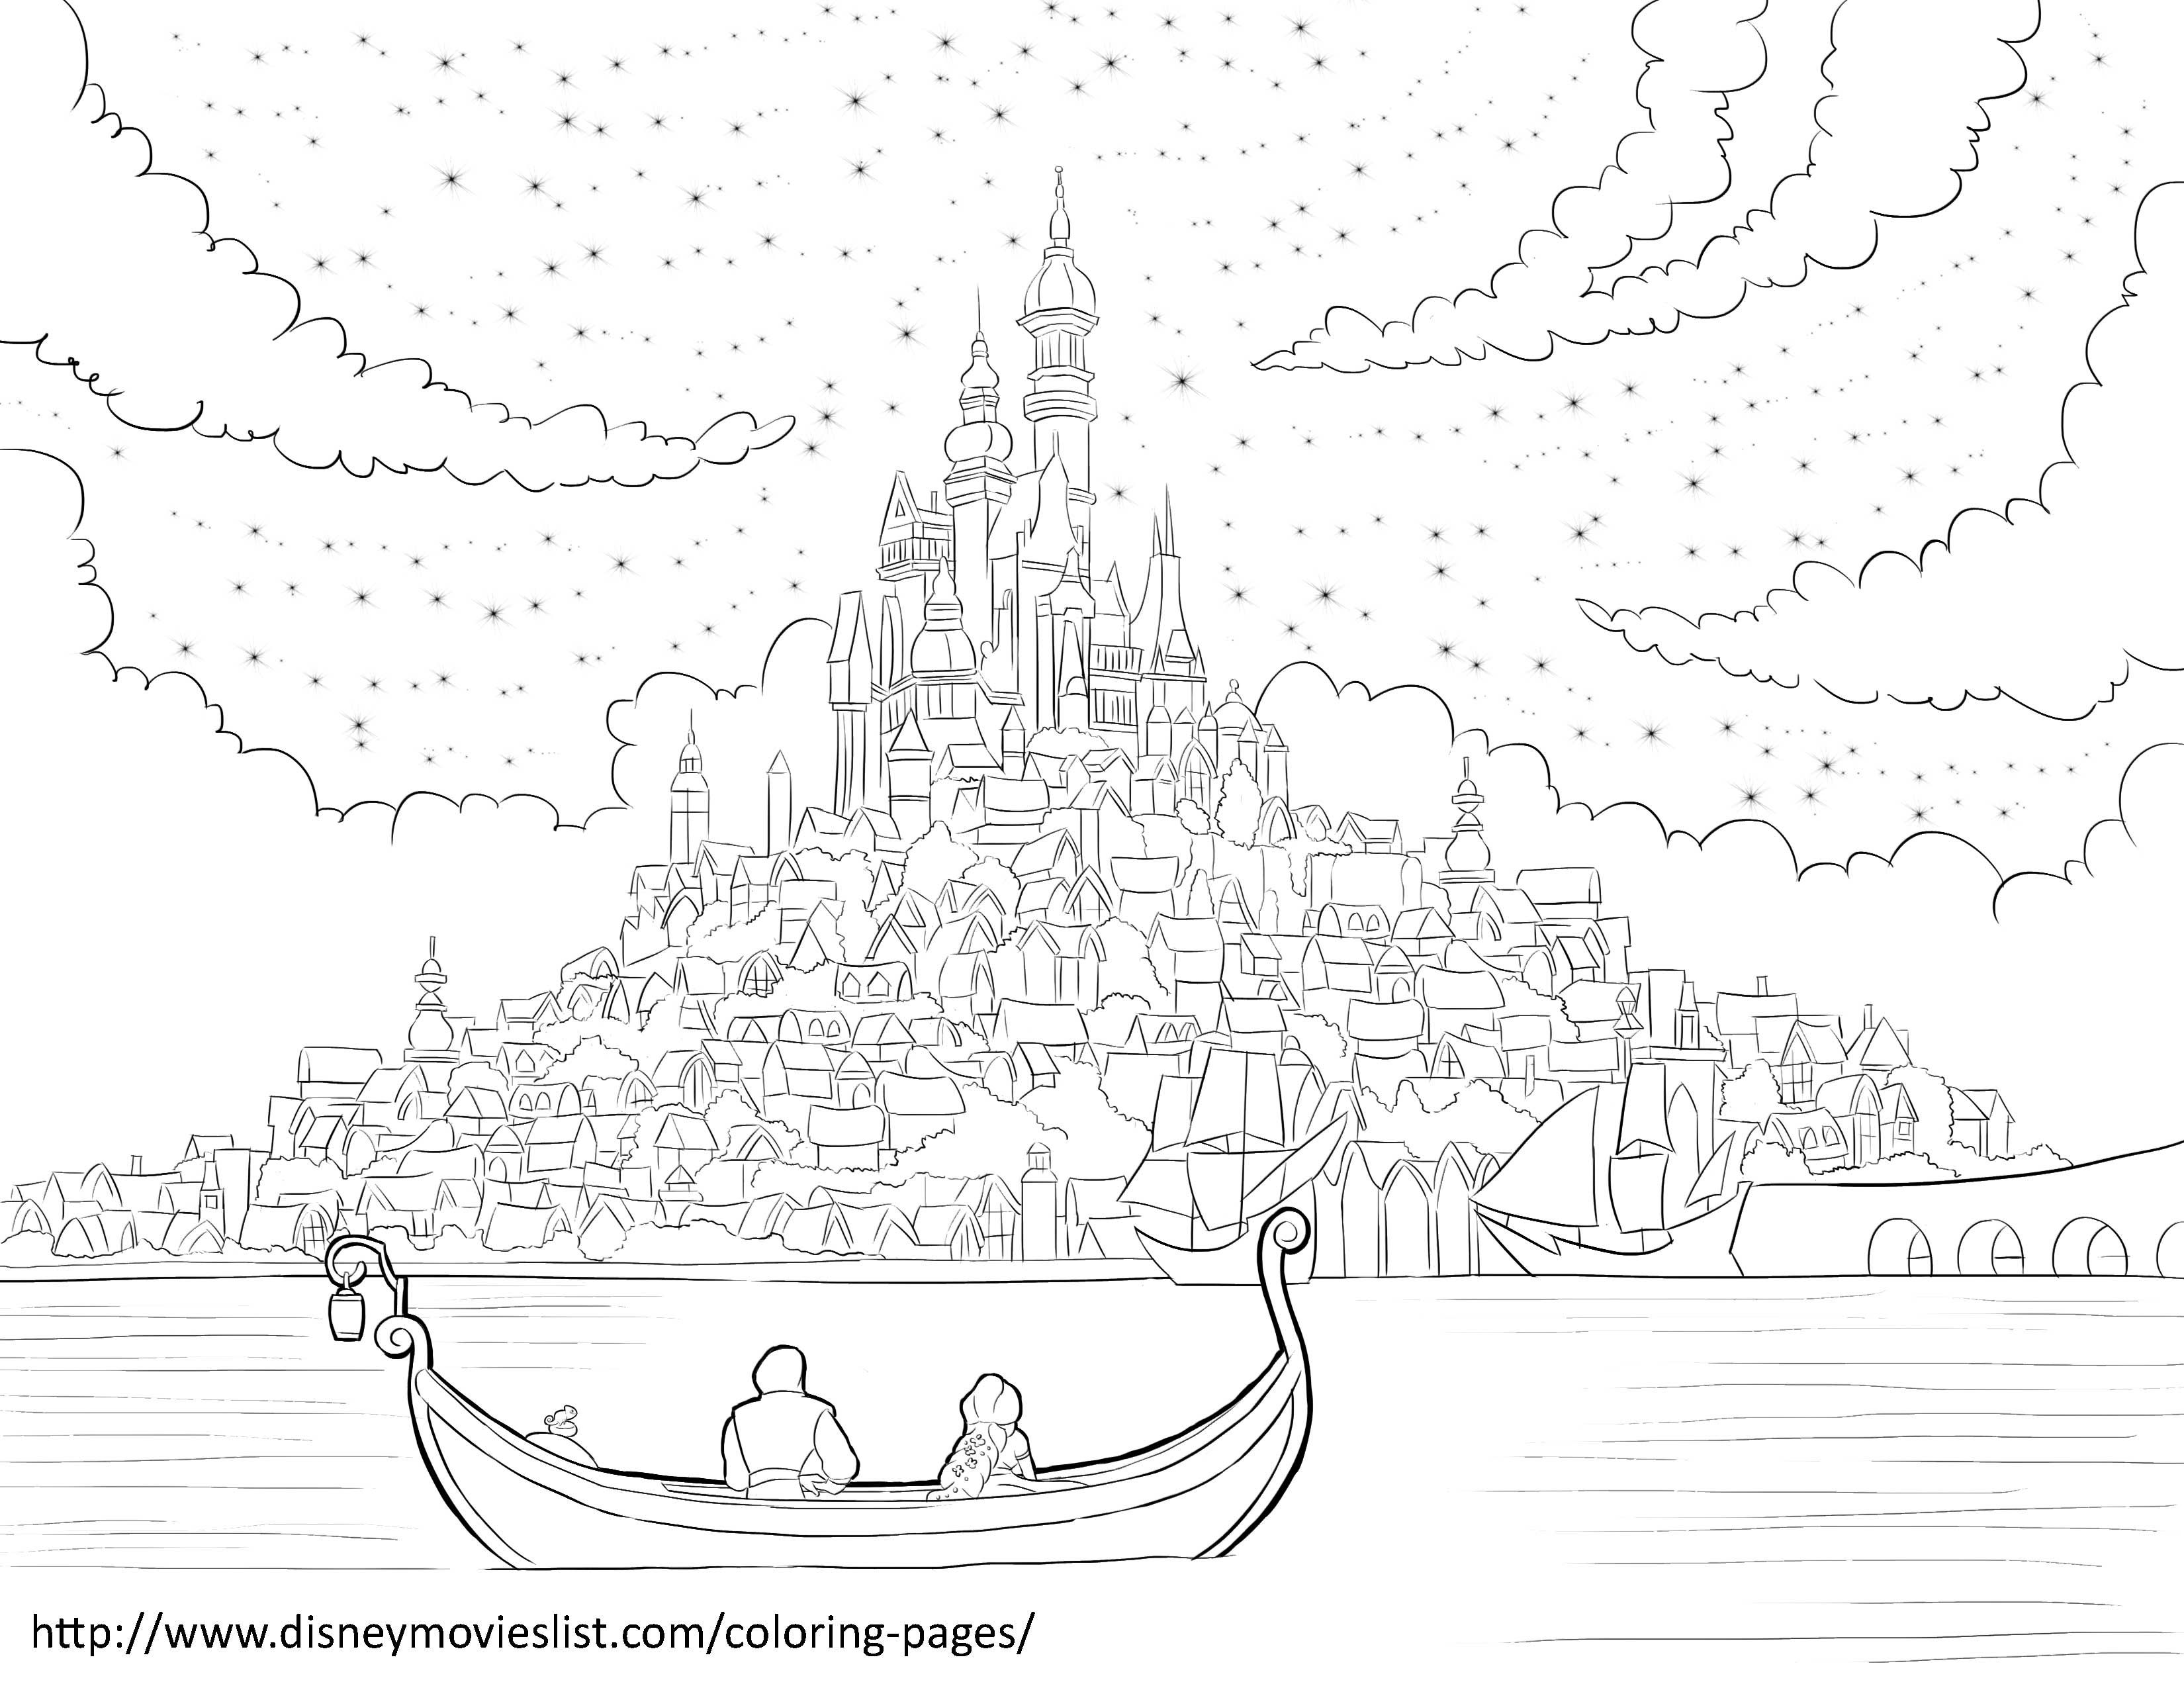 12 Best Disney Coloring Pages Images On Pinterest Disney S - tangled coloring pages pdf